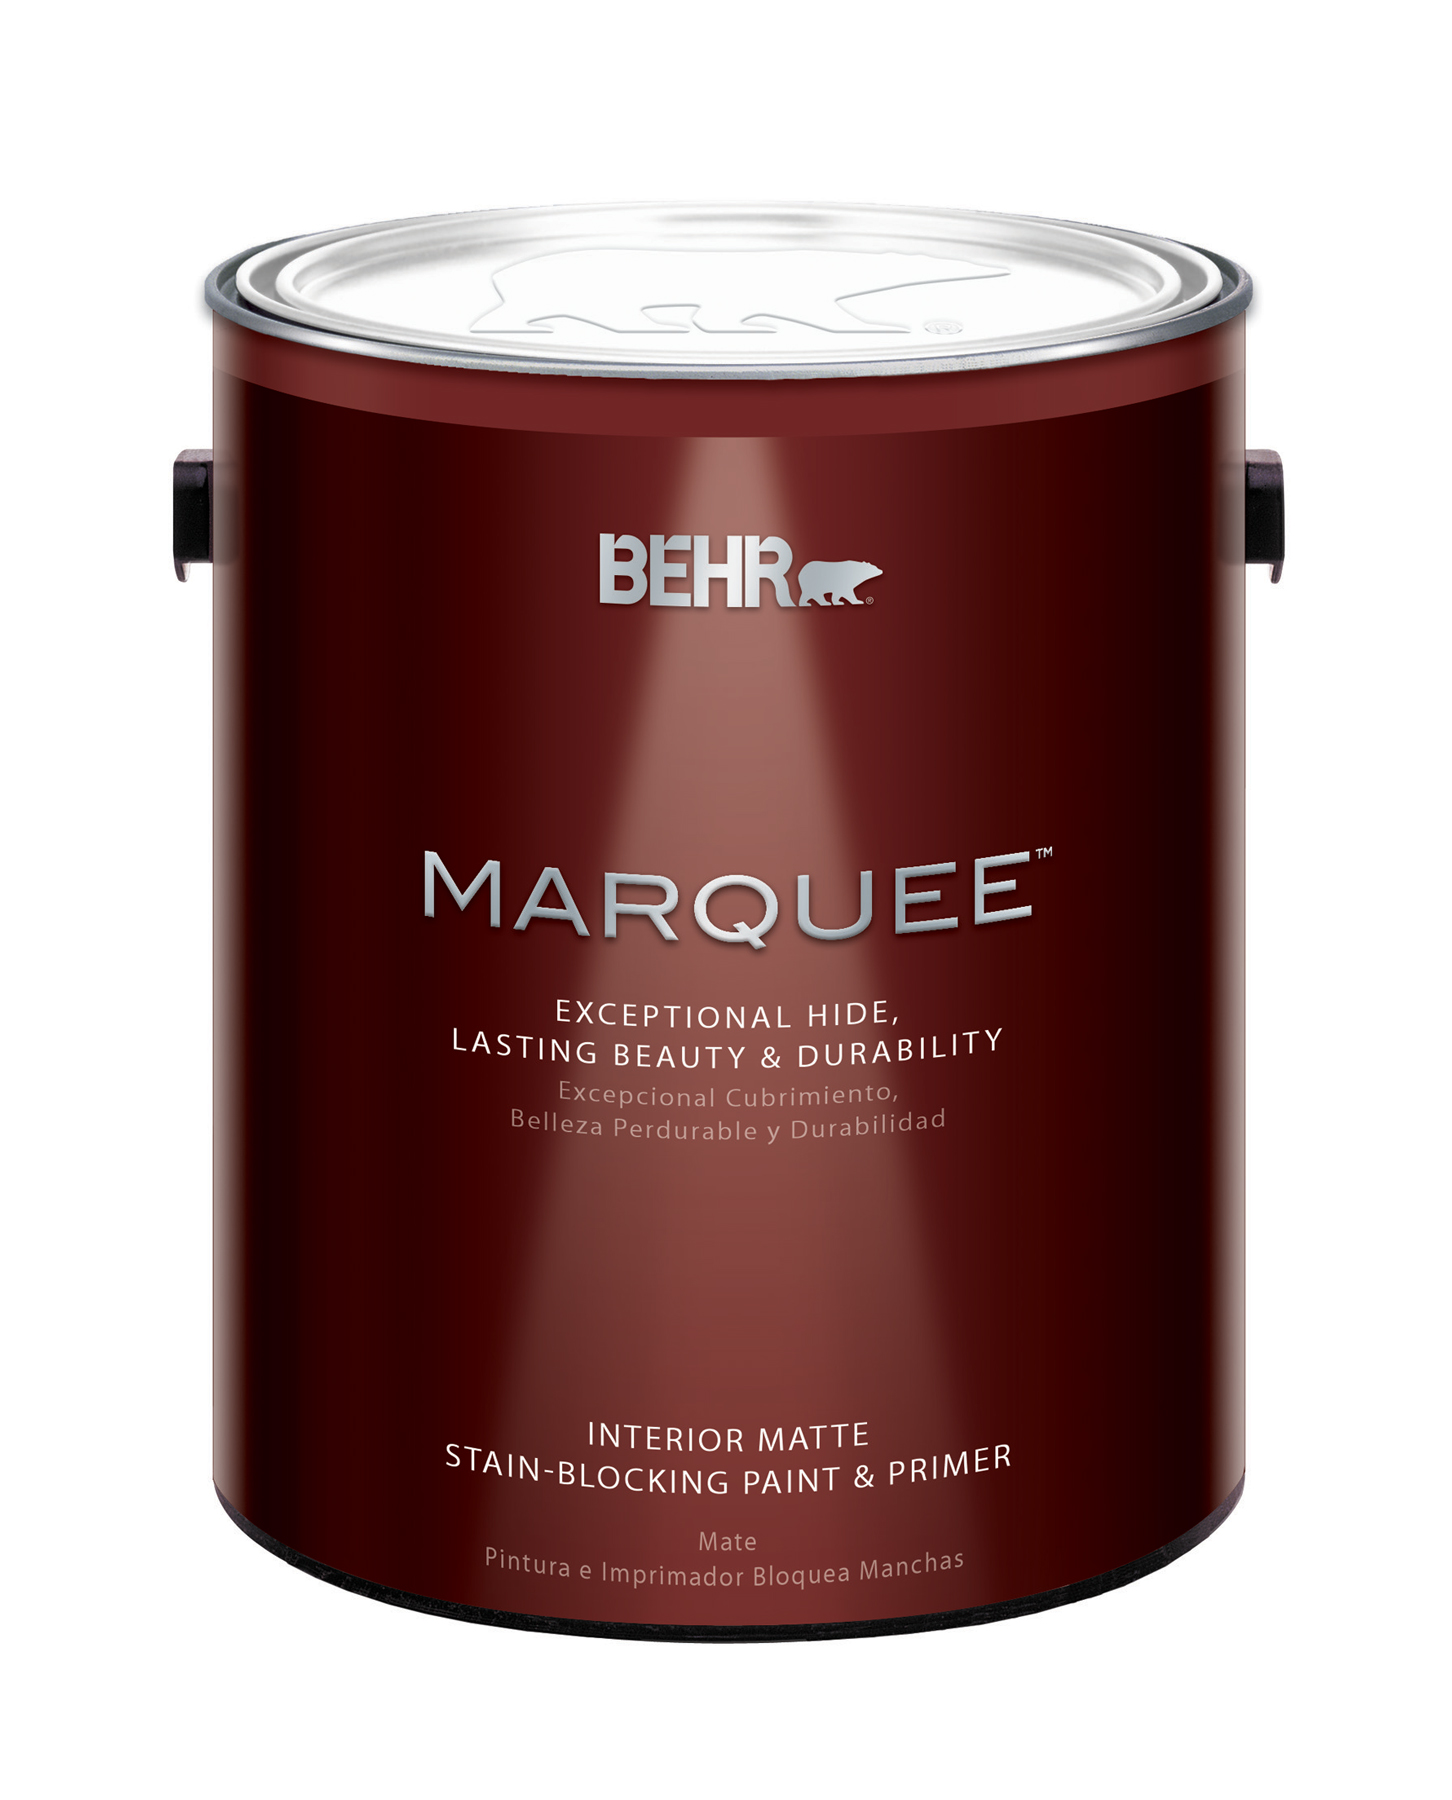 Behr Marquee Interior Matte Photo Courtesy Of Vendor